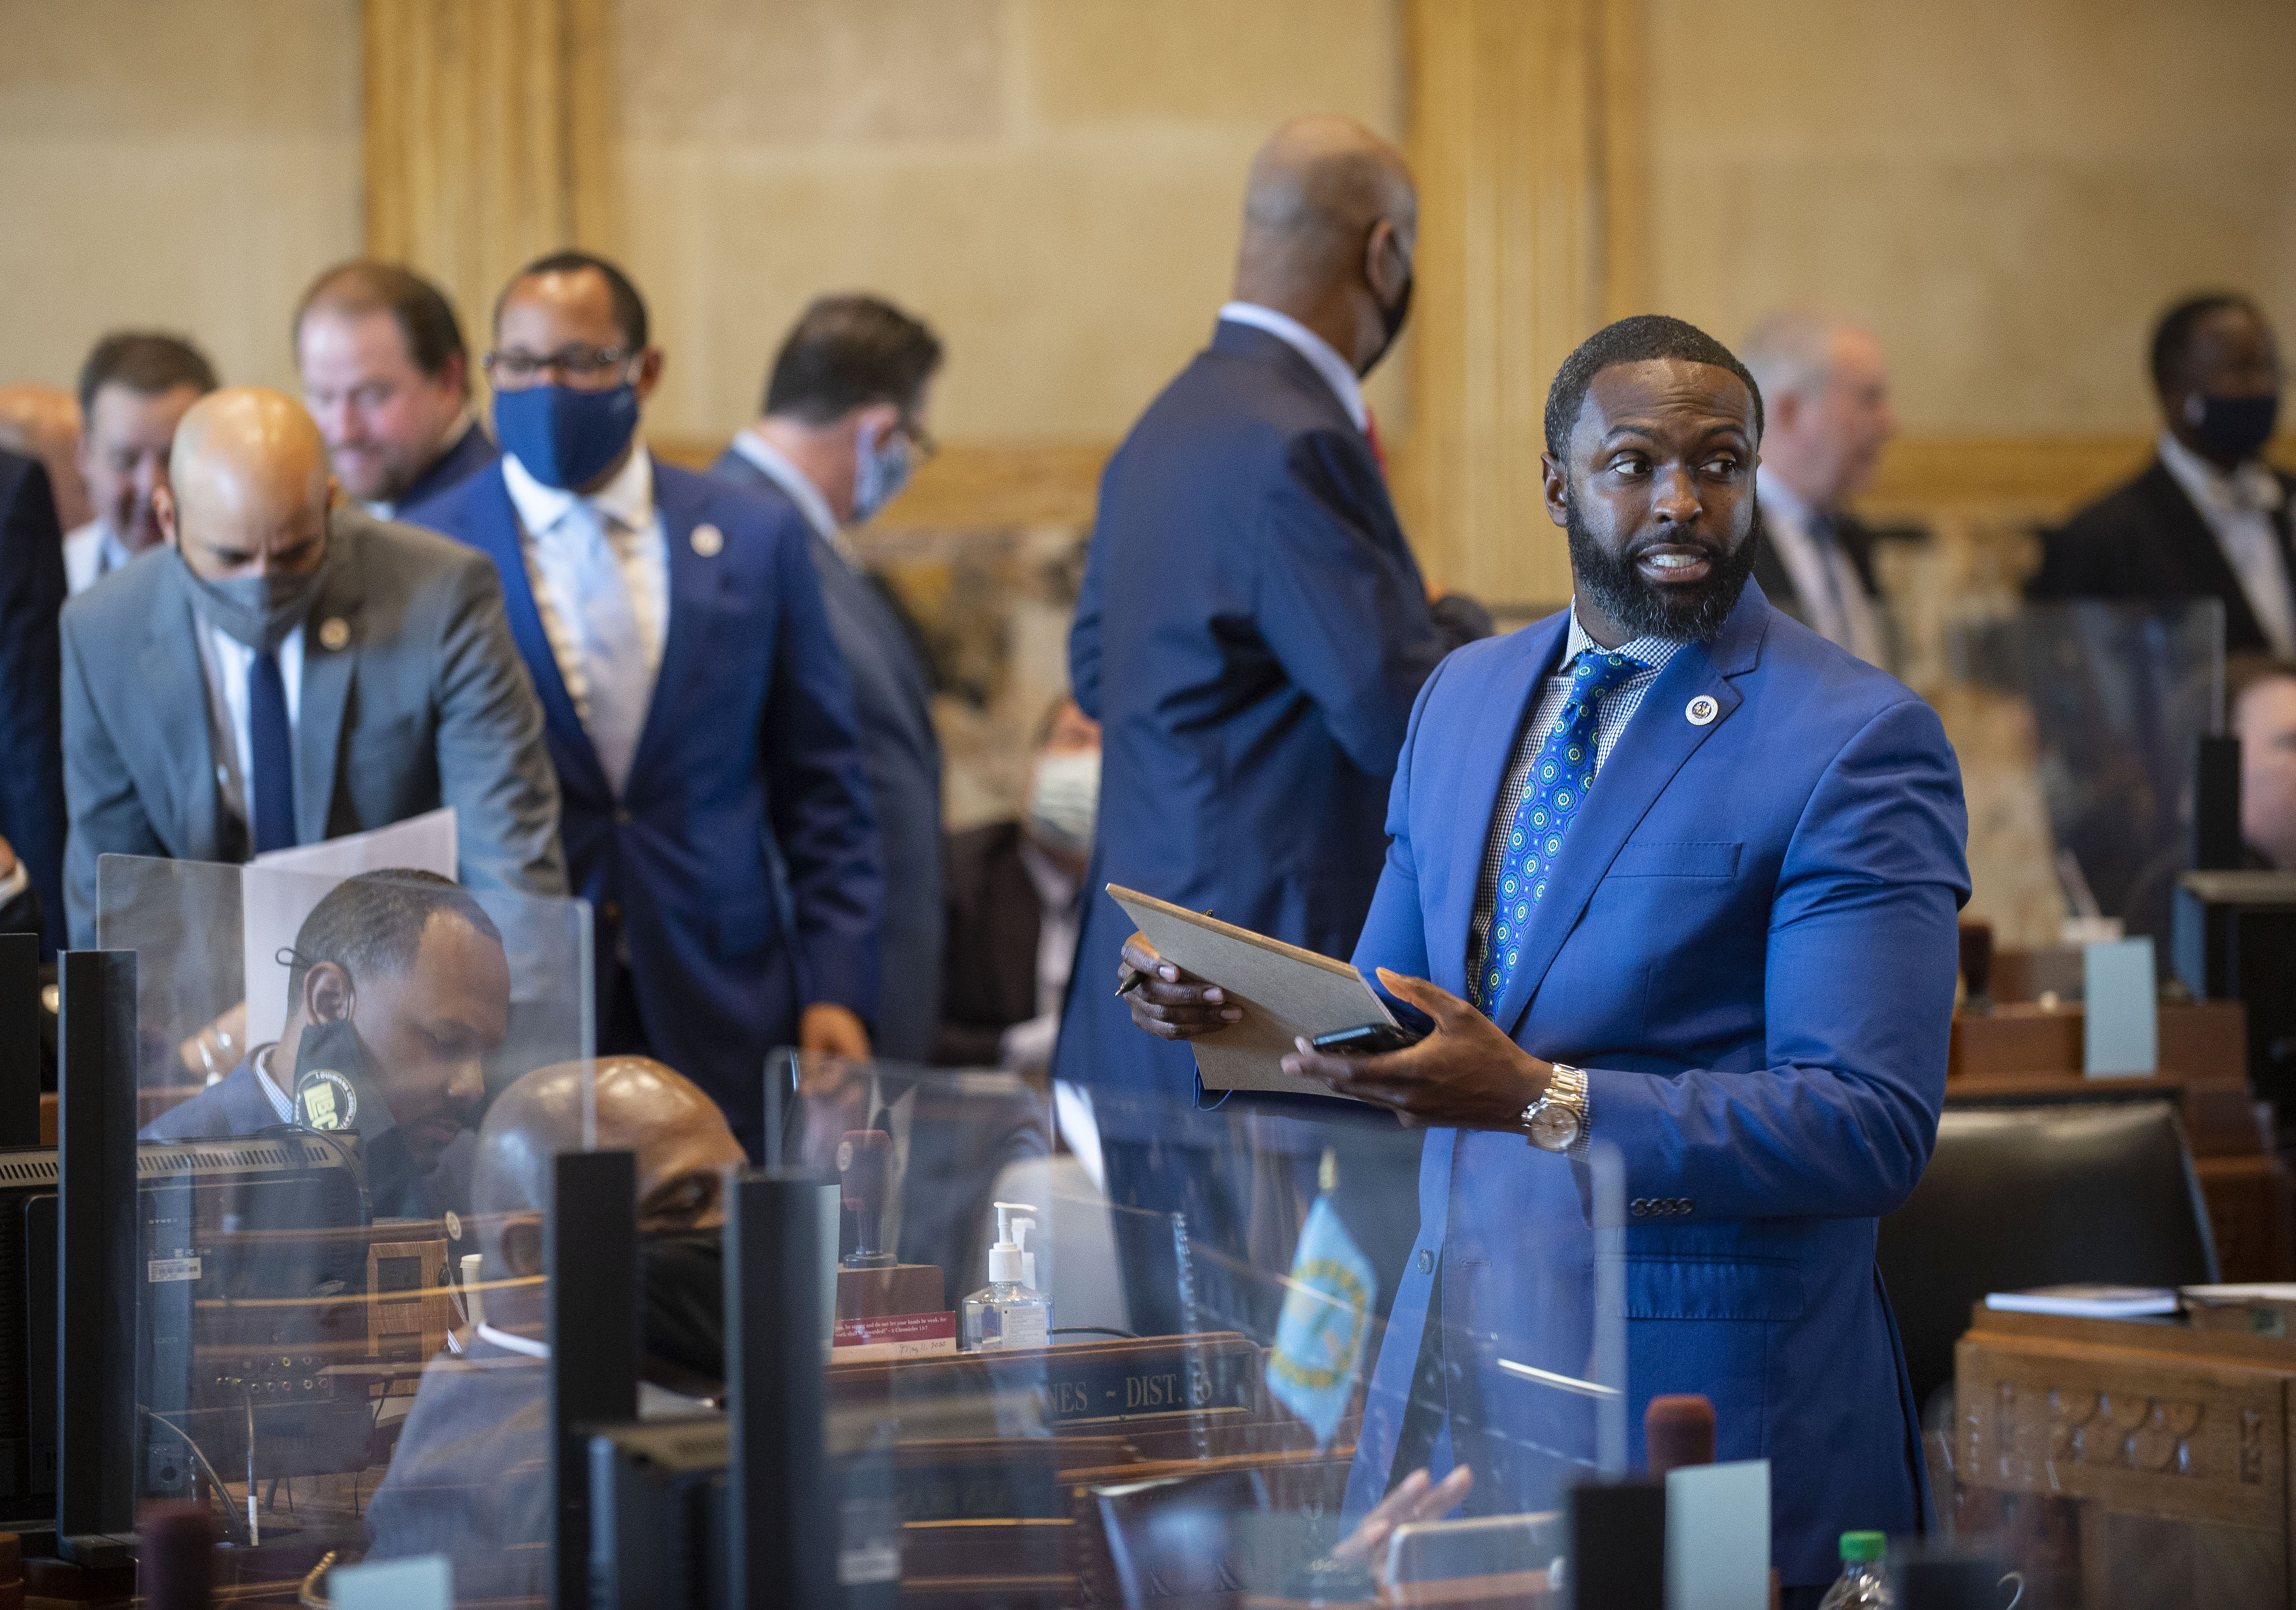 Louisiana state Rep. Ted James, D-Baton Rouge, right, and other representatives talk on the House floor on April 12, 2021, at the Capitol. (Photo by Travis Spradling, The Advocate)